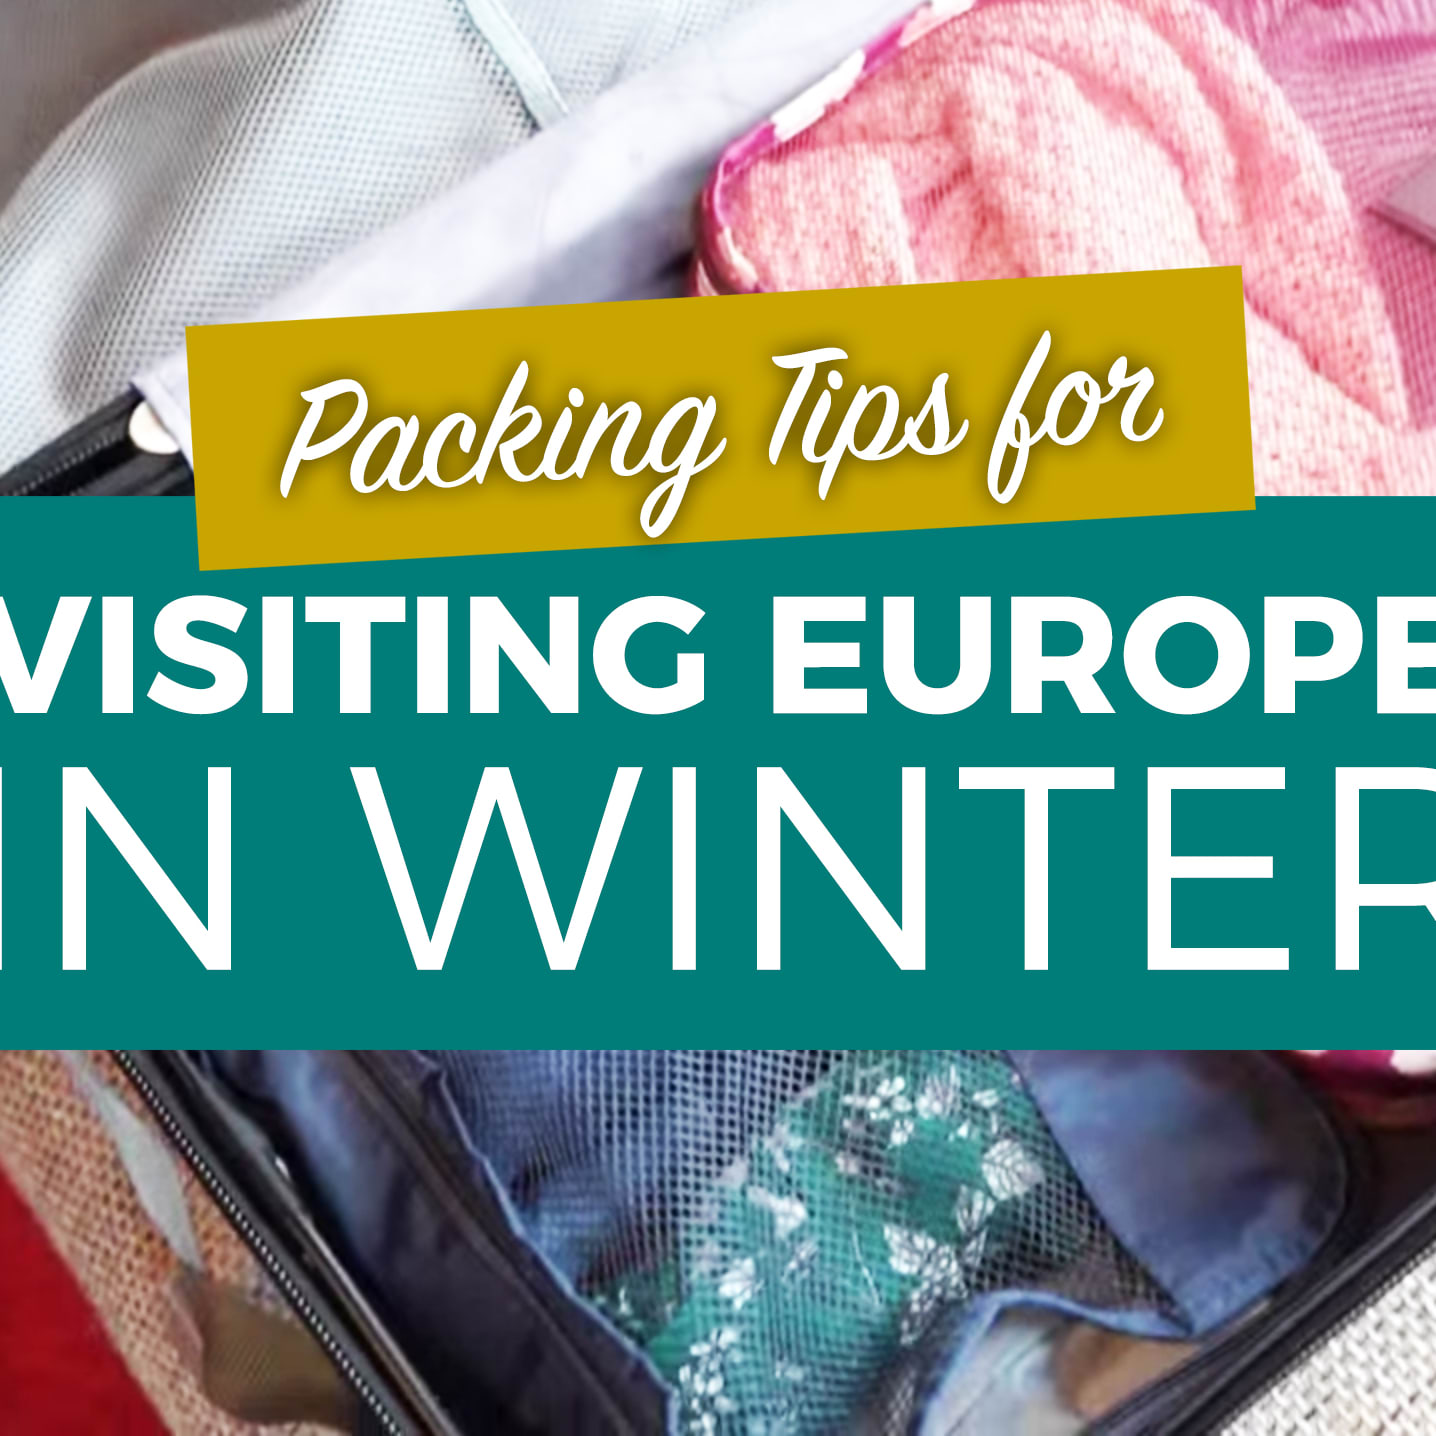 cc44fb9d1838 Travelling Europe in Winter  Female Winter Packing List for Europe